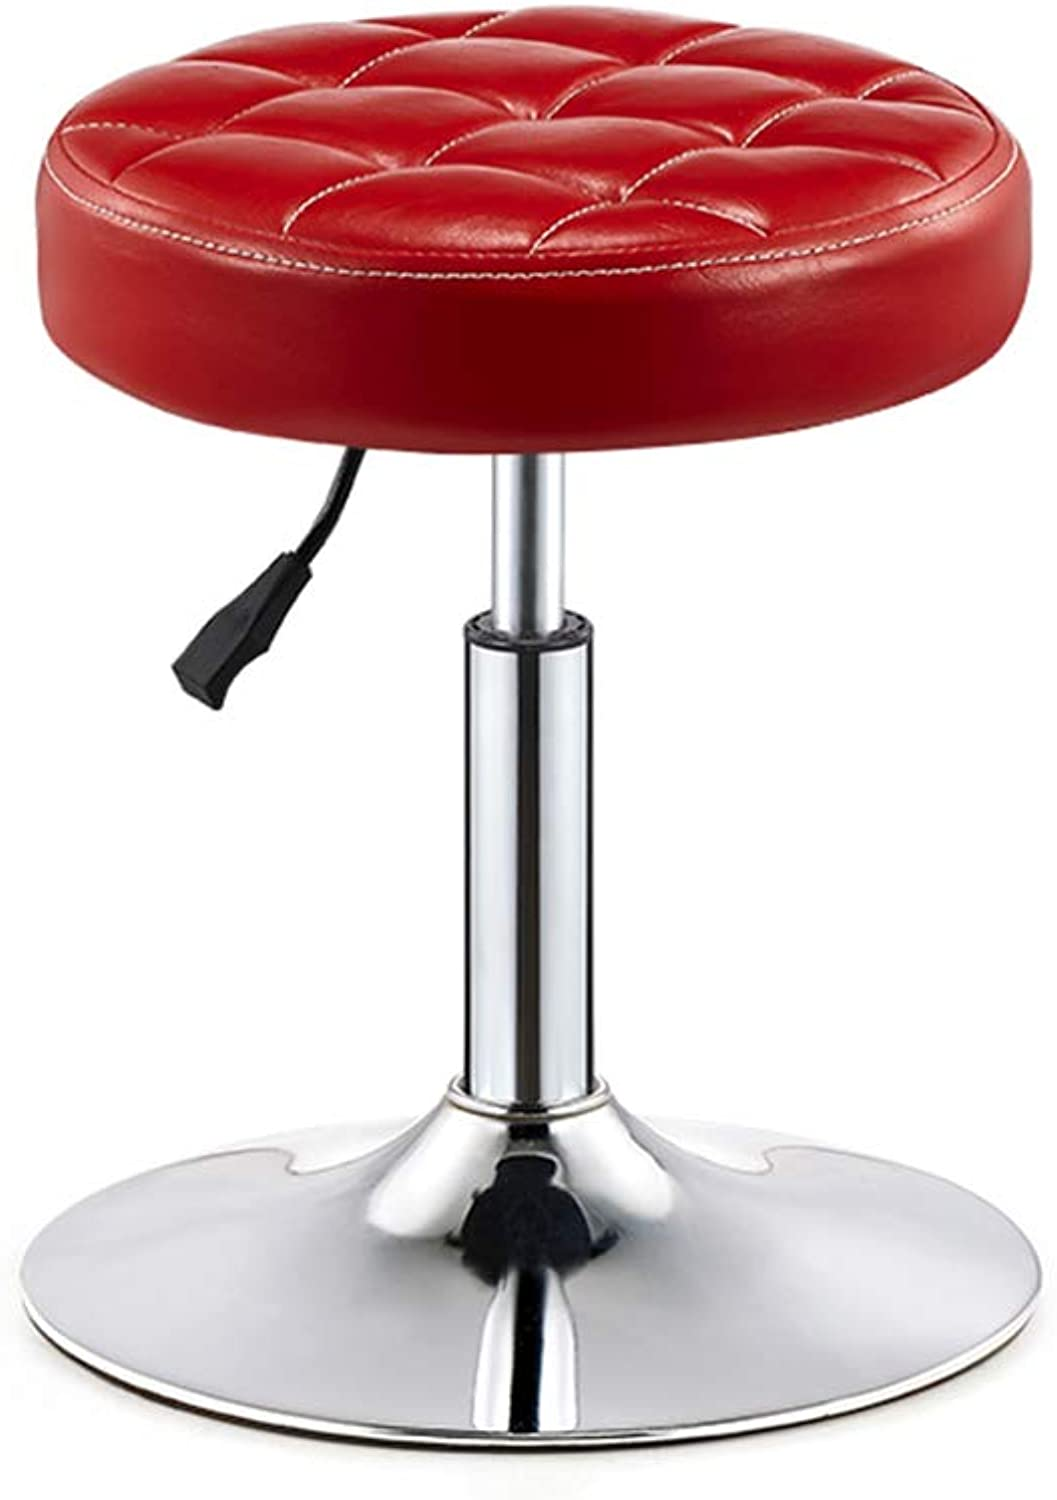 LIQICAI Bar Stool Faux Leather Adjustable Height Swivel Stool Large Base Extremely Comfy, 3 colors Optional (color   RED)